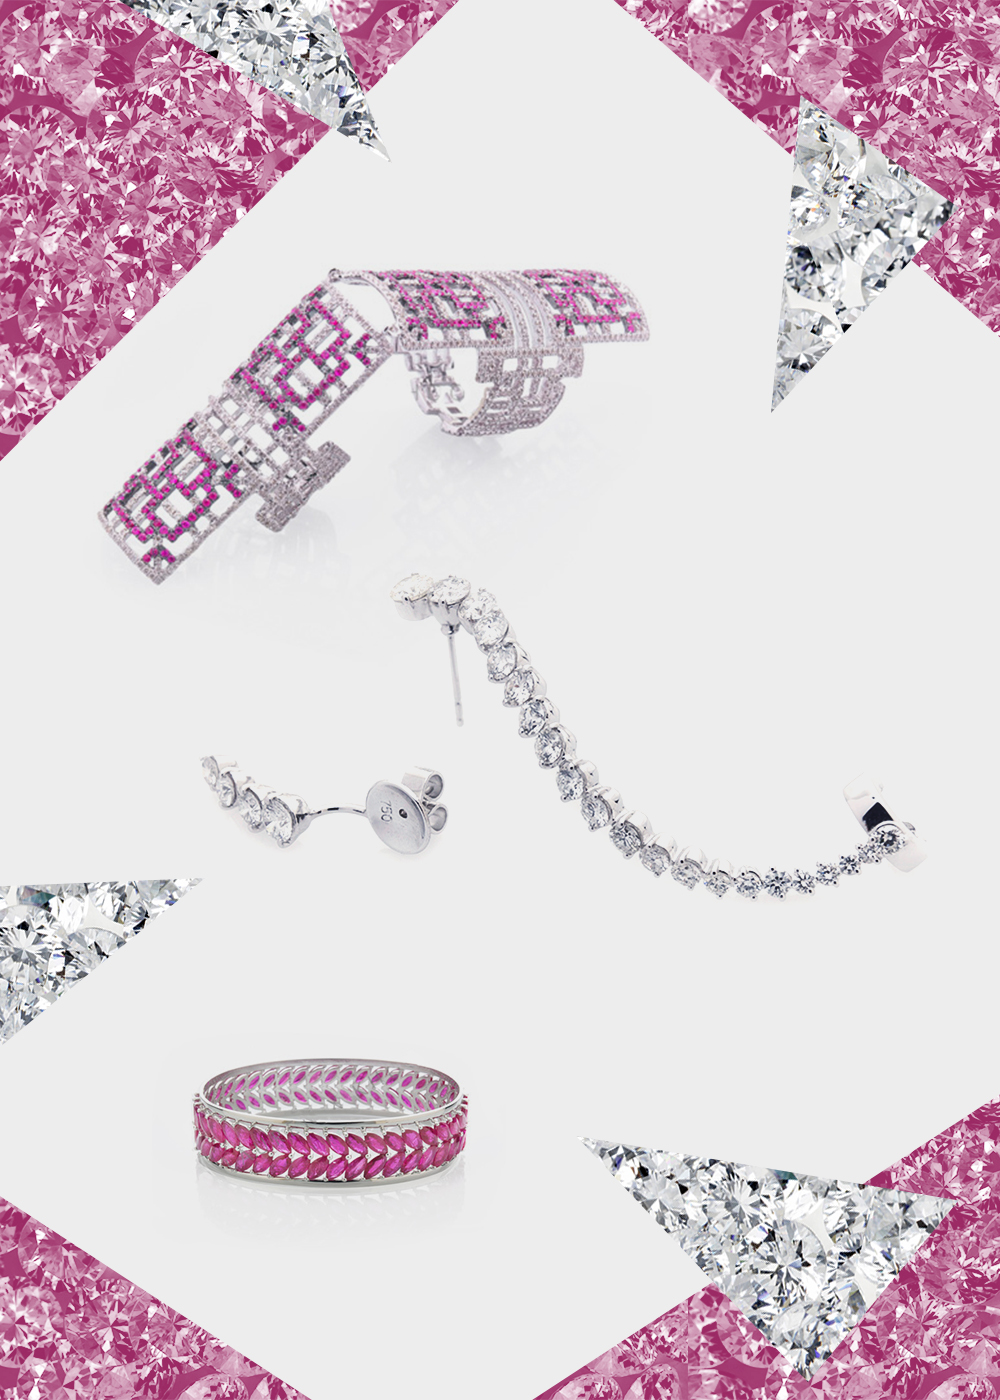 Lauren-X-Khoo-Fine-Jewelry-Collection-Pink-Maison-Mittweg